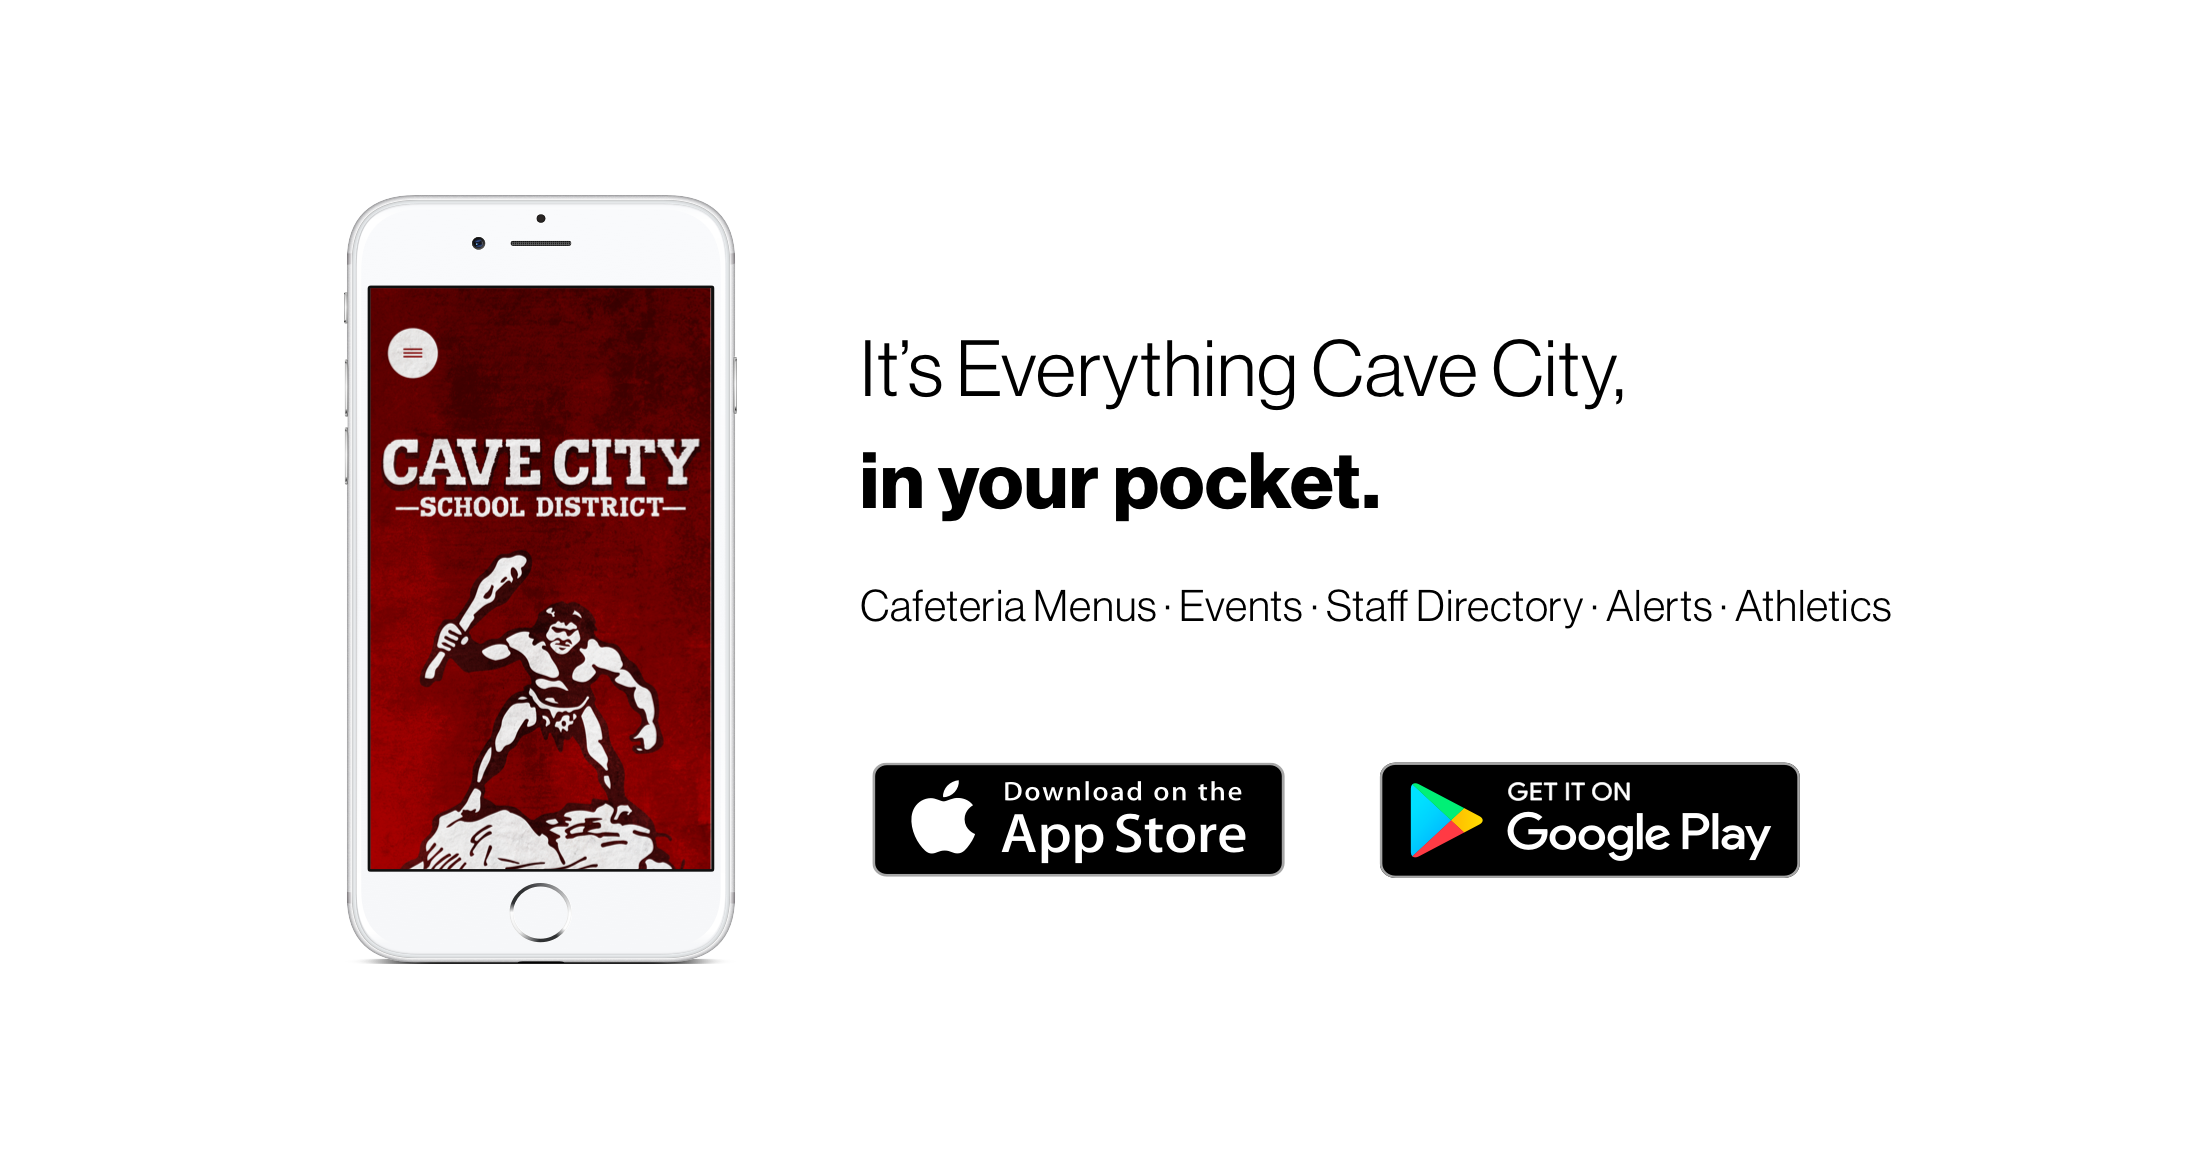 mobile app promo for cave city - download today